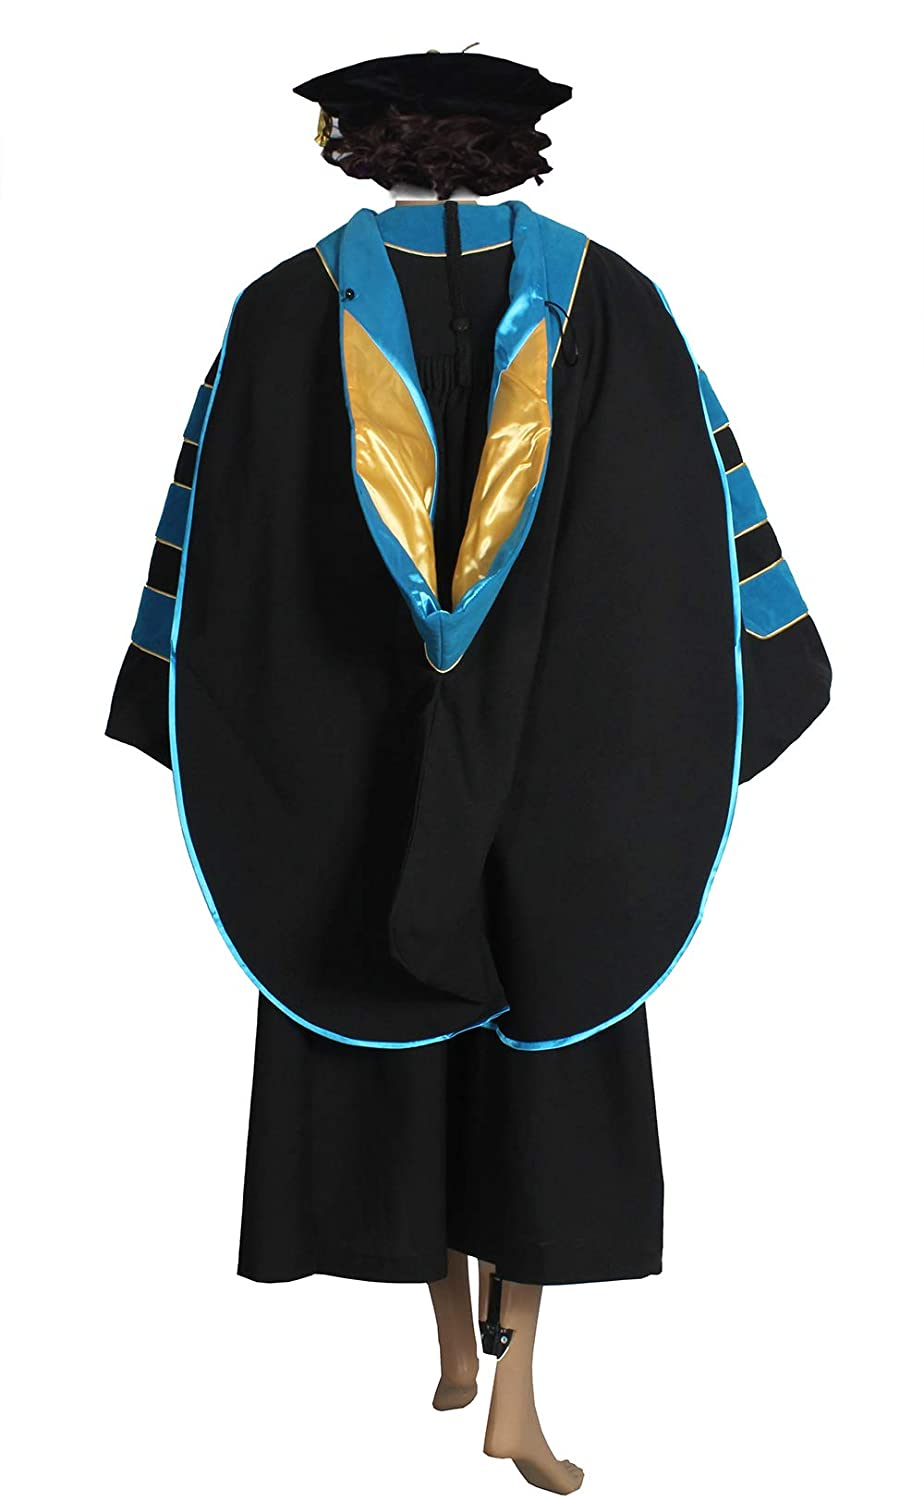 Amazon.com: HappySecret Doctoral Gown Tam and Hood with Gold Pinging ...